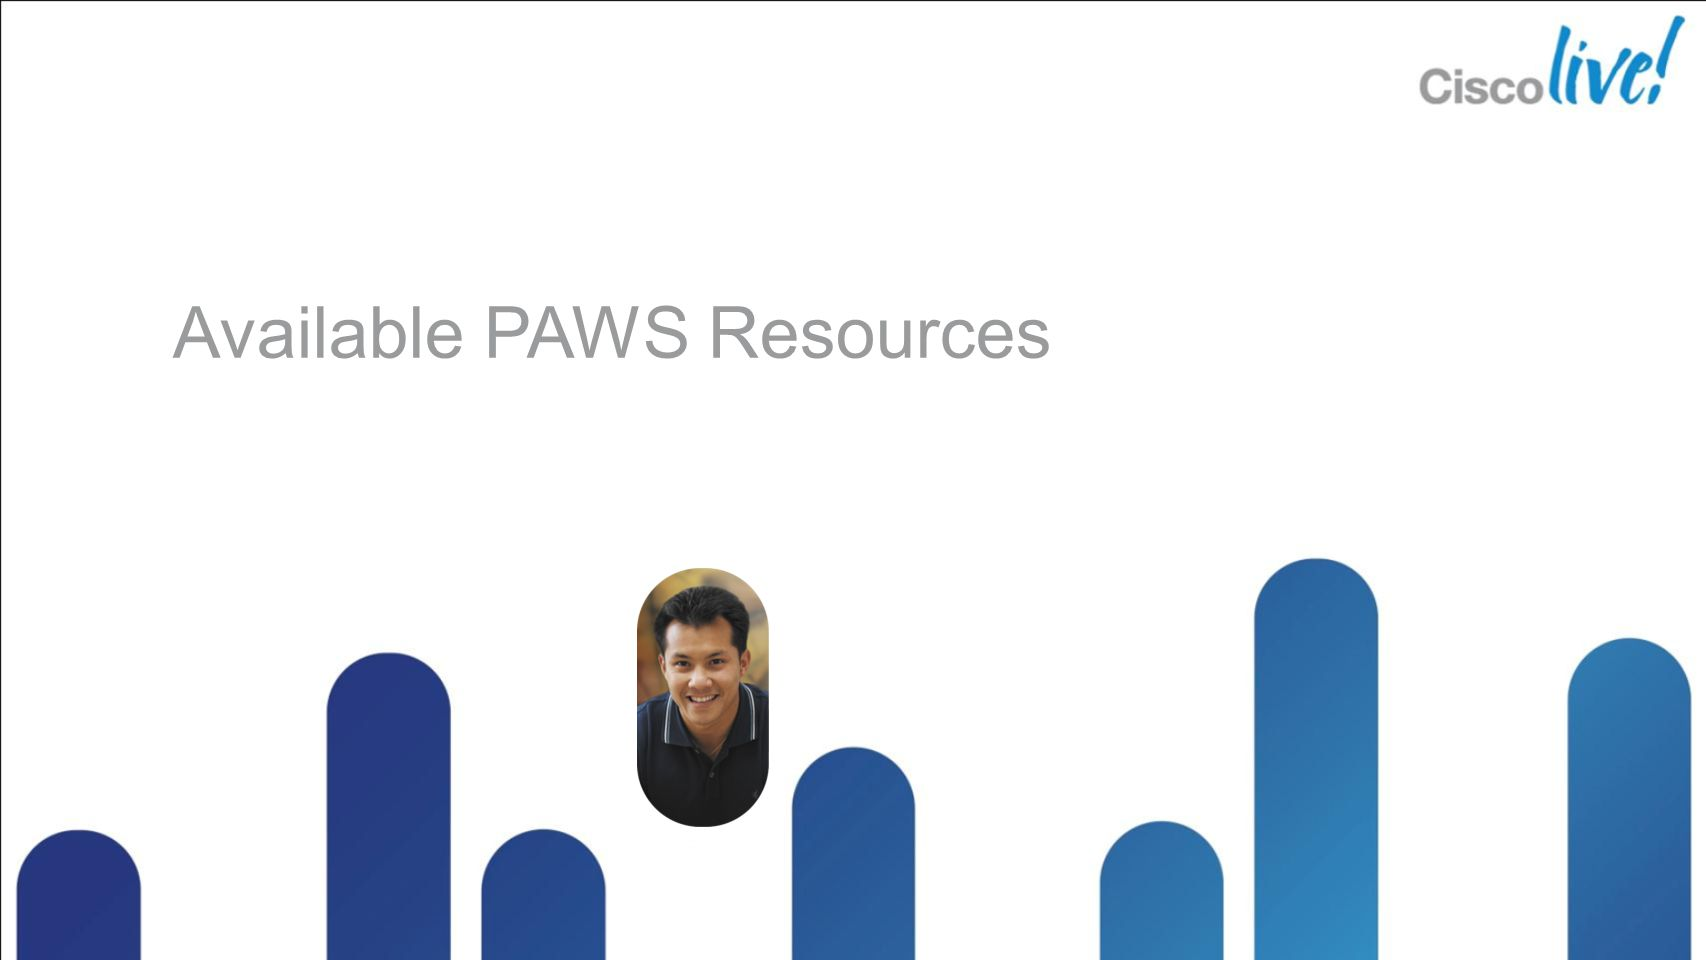 Available PAWS Resources